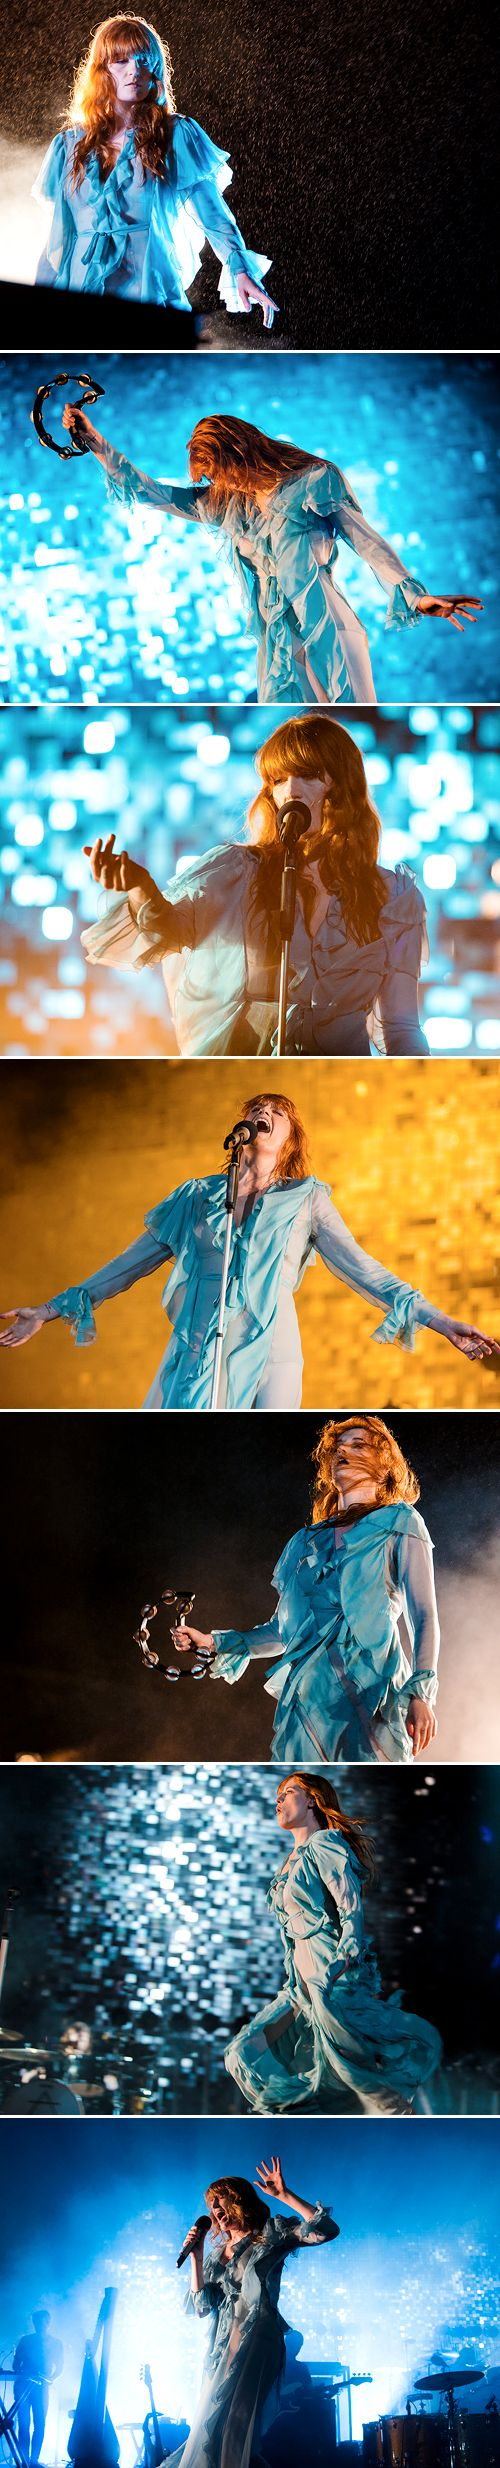 Florence and The Machine at the 2016 Lollapalooza Brazil on March 13, 2016.